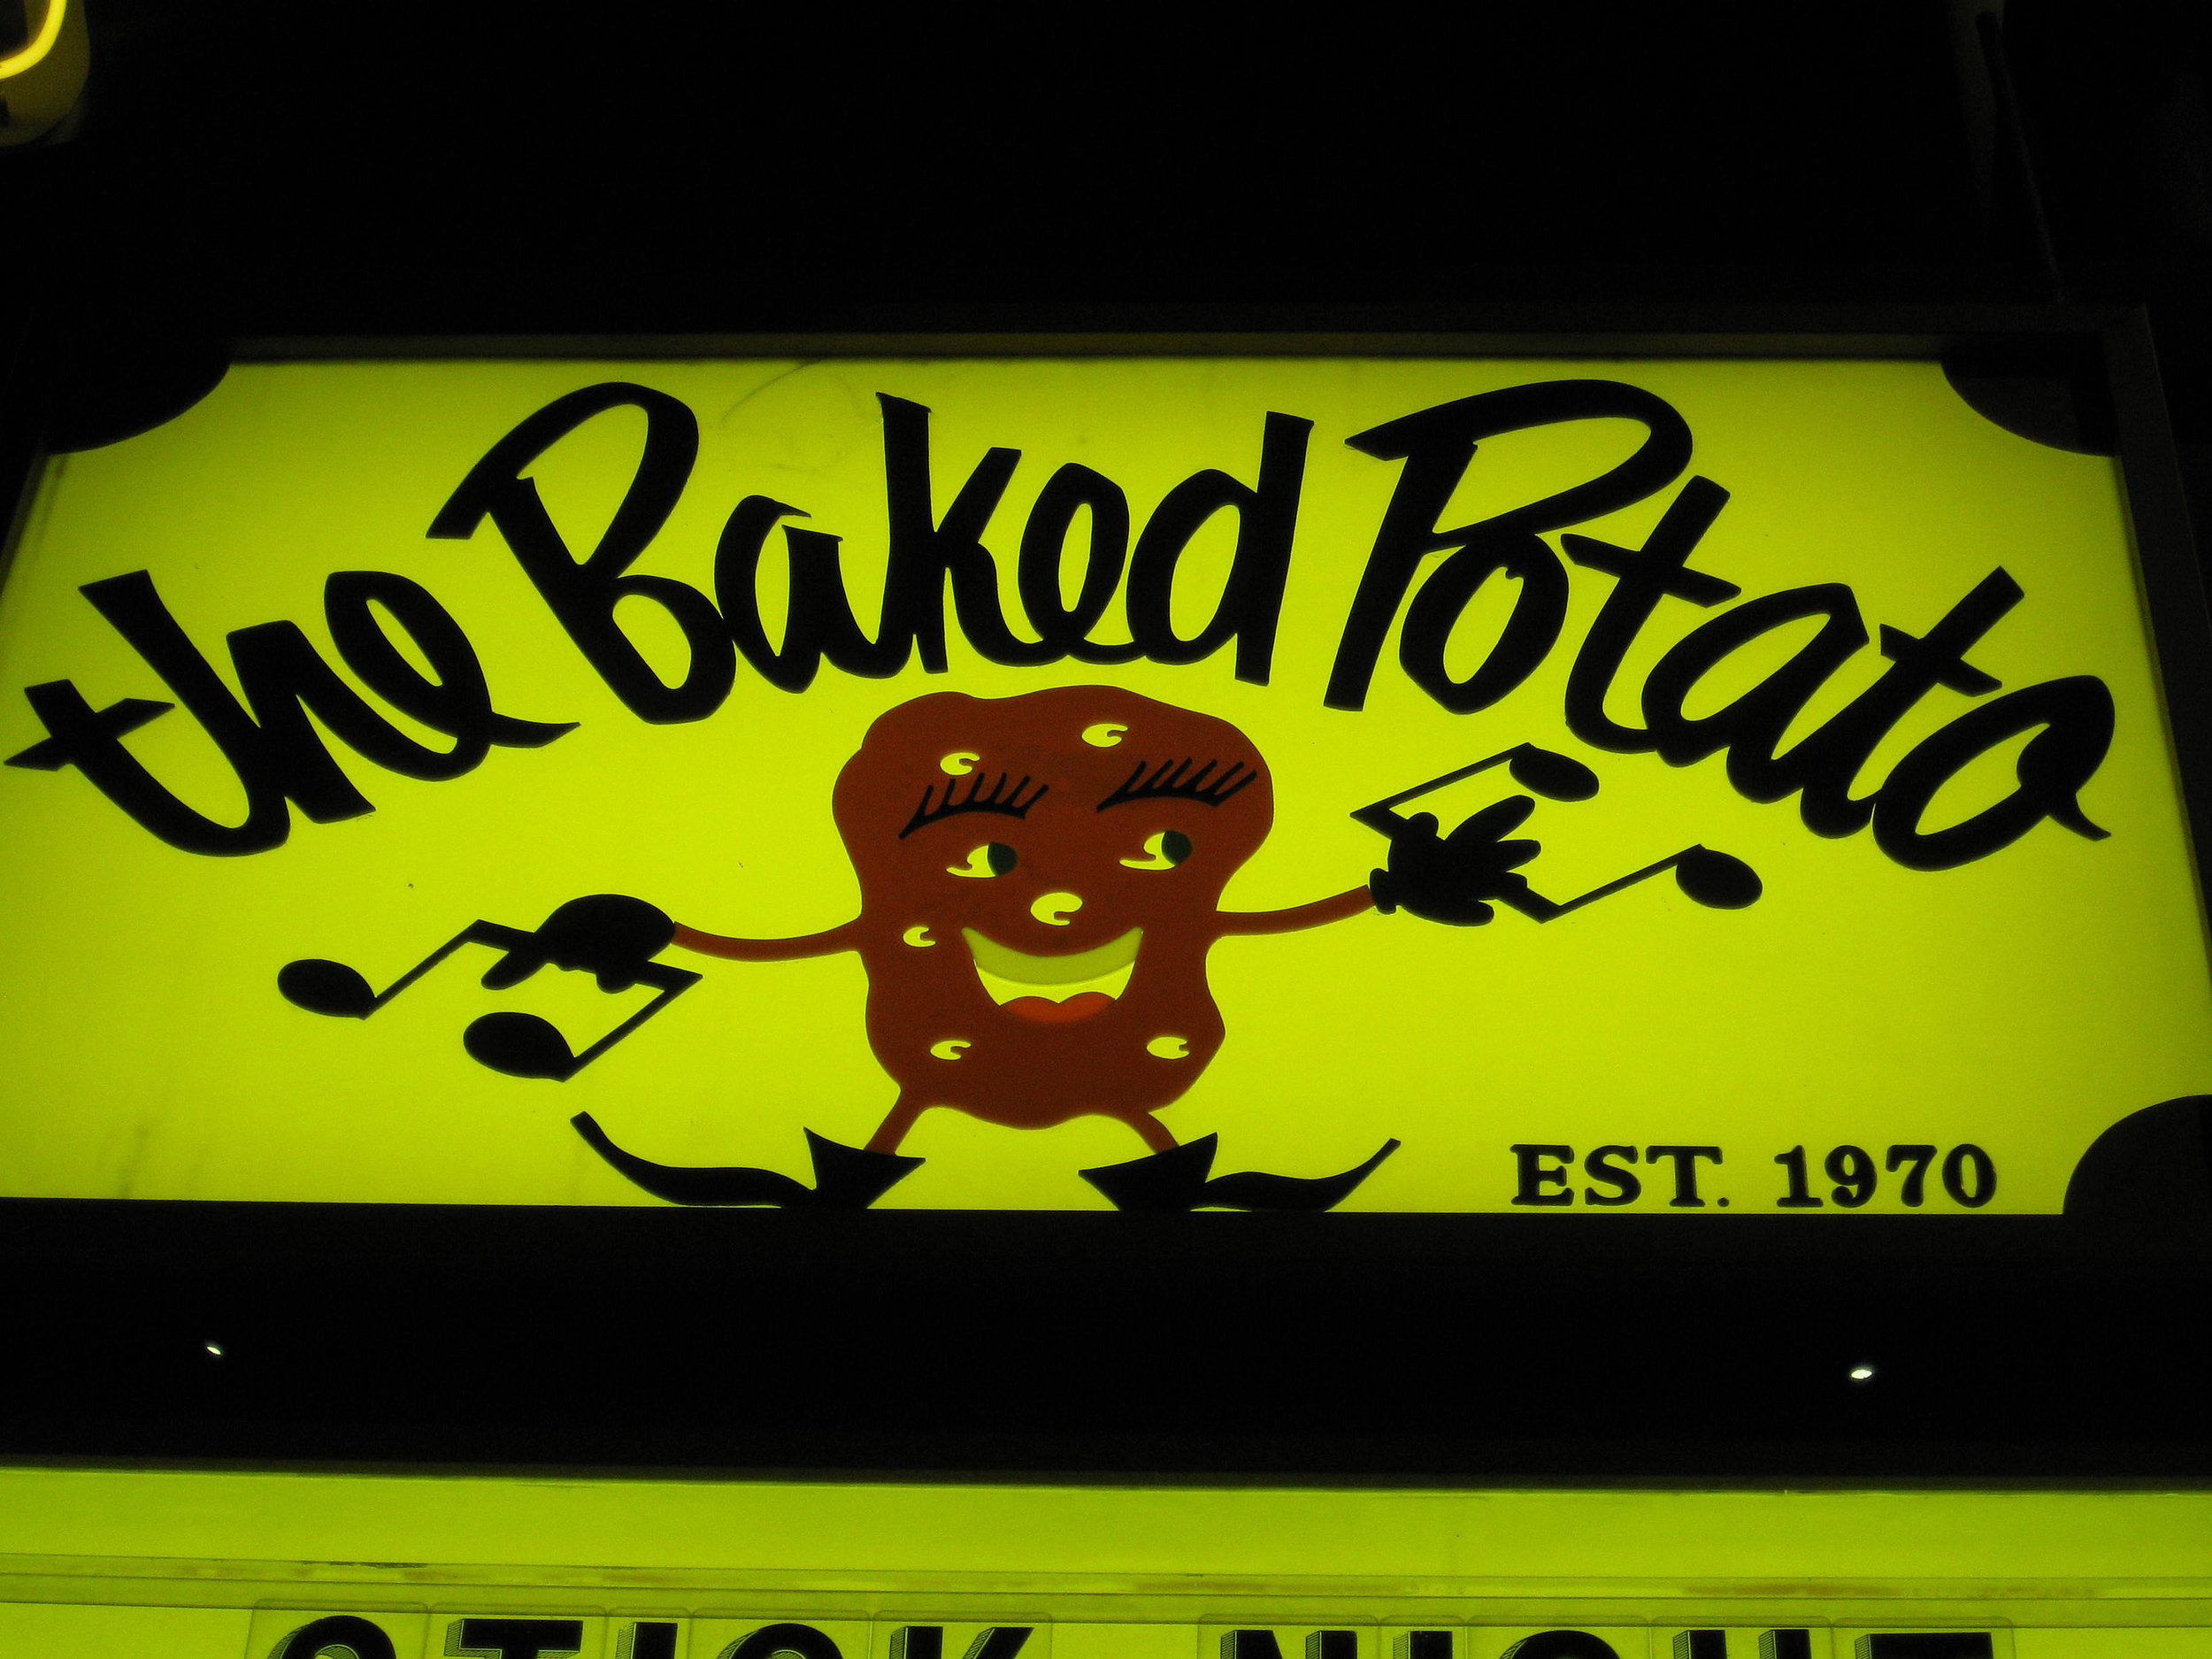 the-baked-potato.jpg